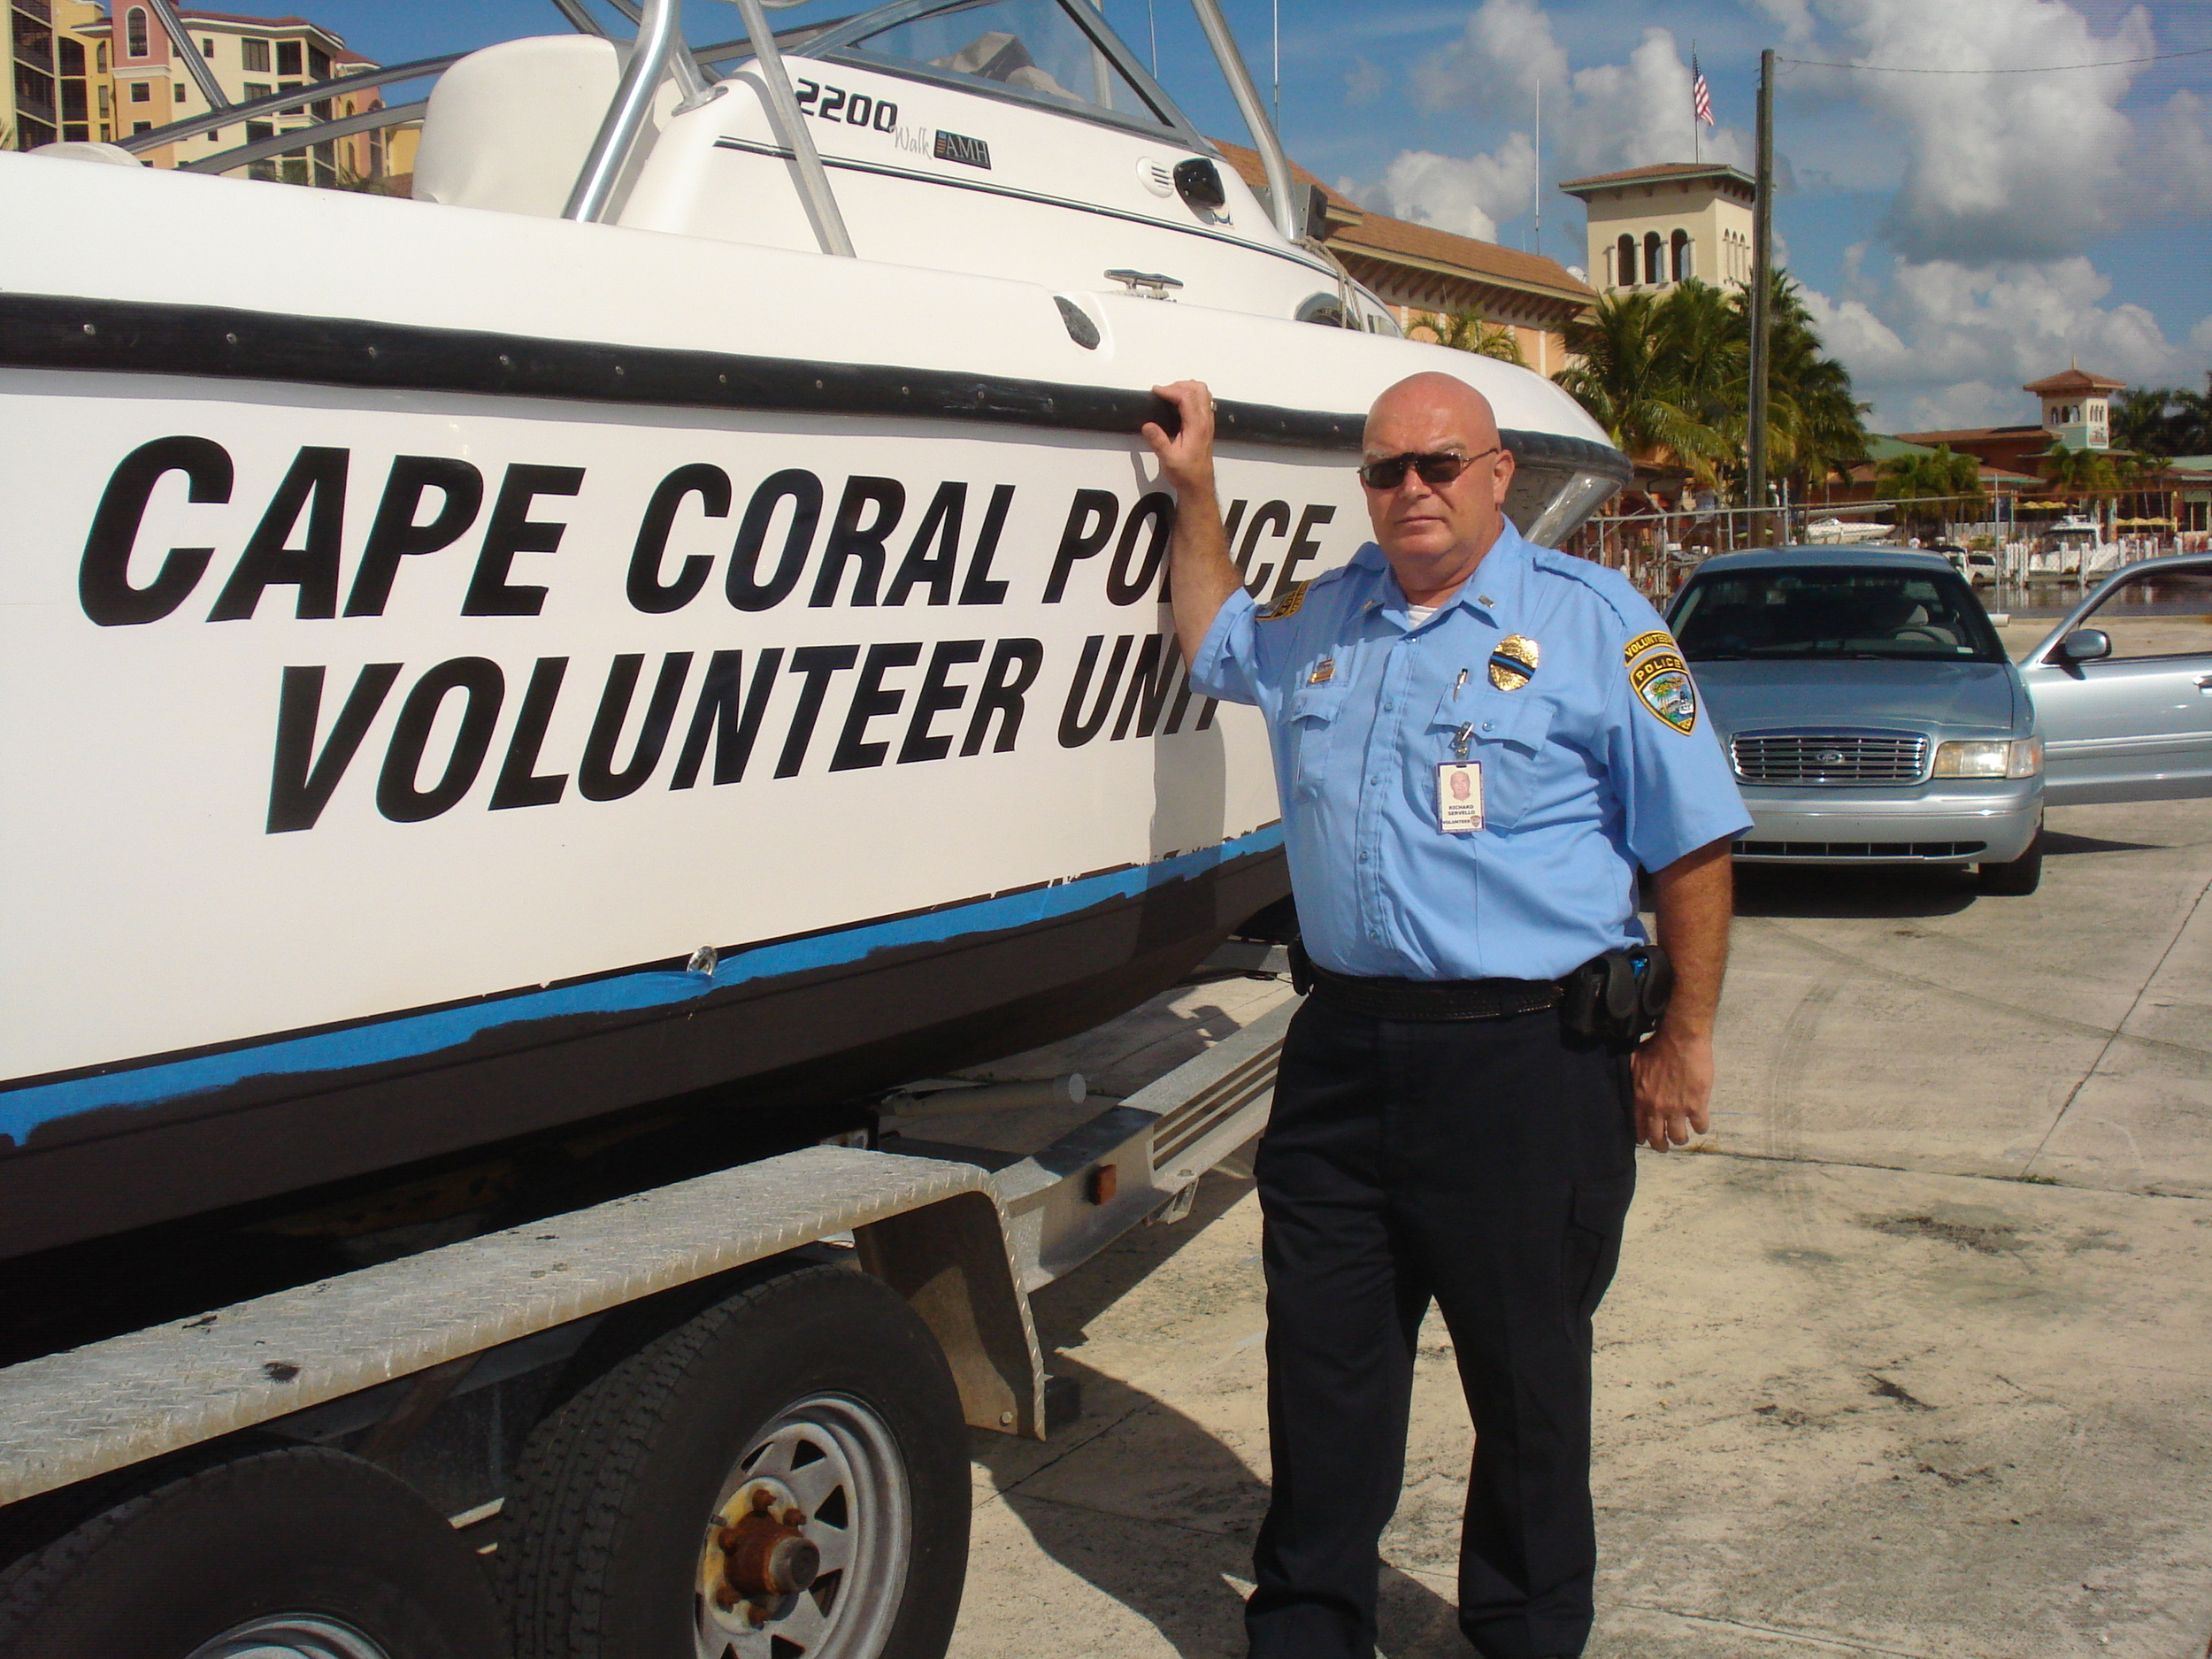 PHOTO: TheCape Coral Police DepartmentPolice Volunteer Unit is seeking applicants. (Photo Courtesy ofCape Coral Police Department)